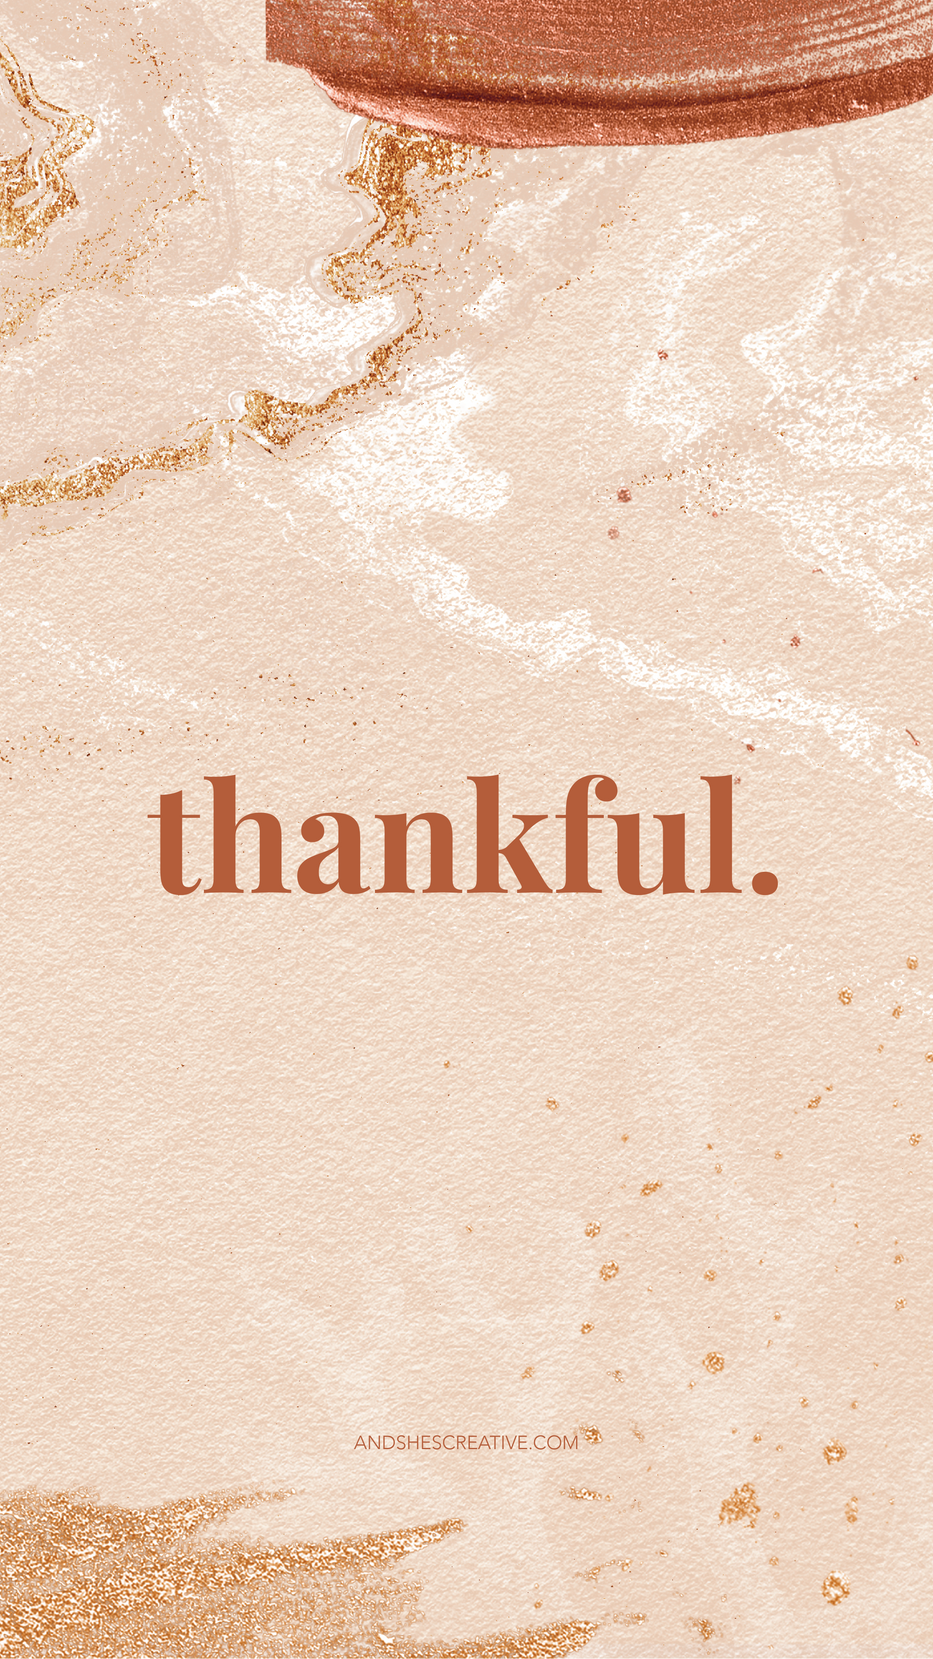 Thankful Mobile Background